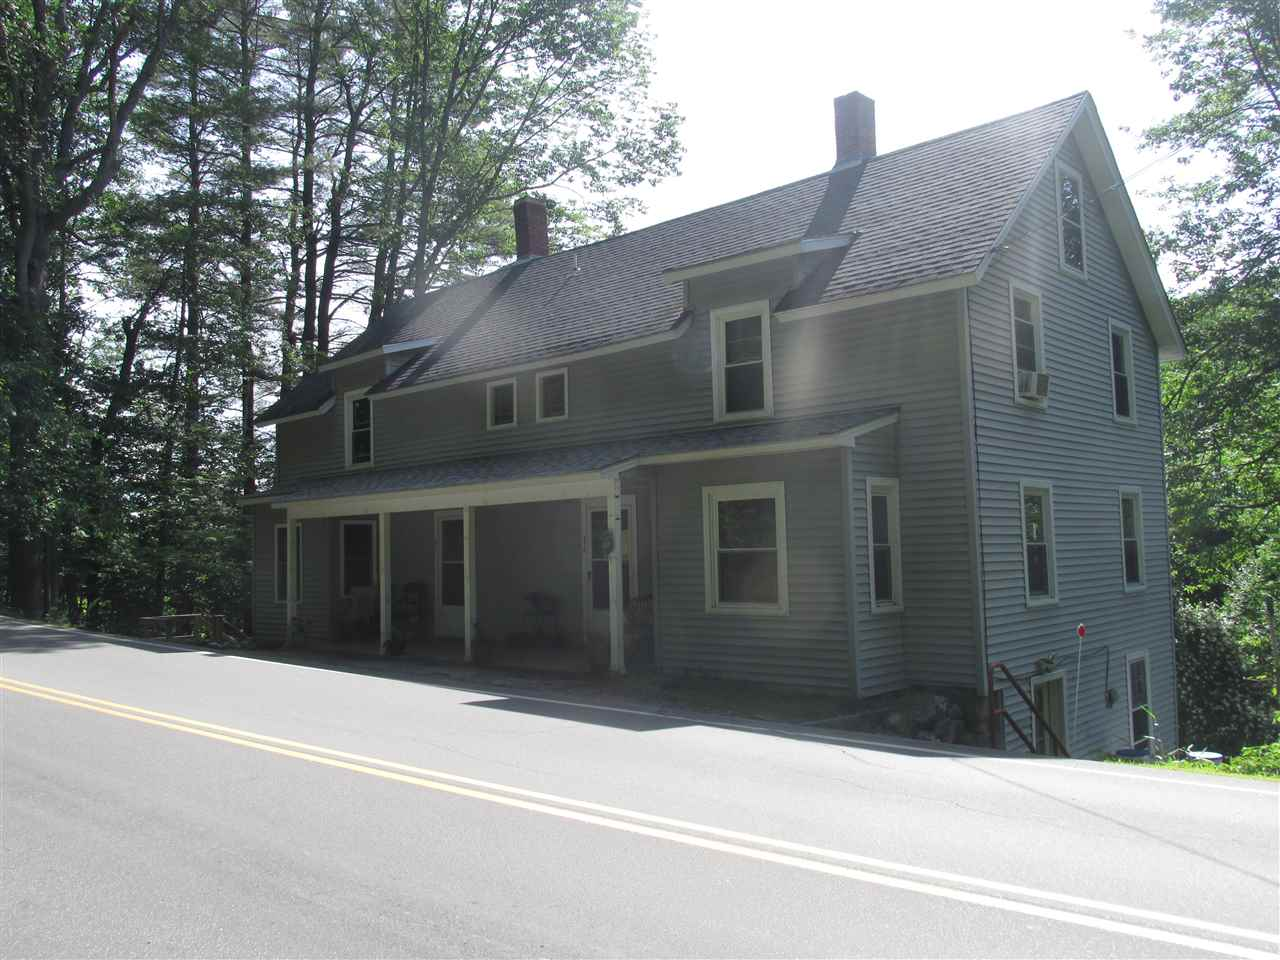 image of New Boston NH  2 Unit Multi Family | sq.ft. 3376